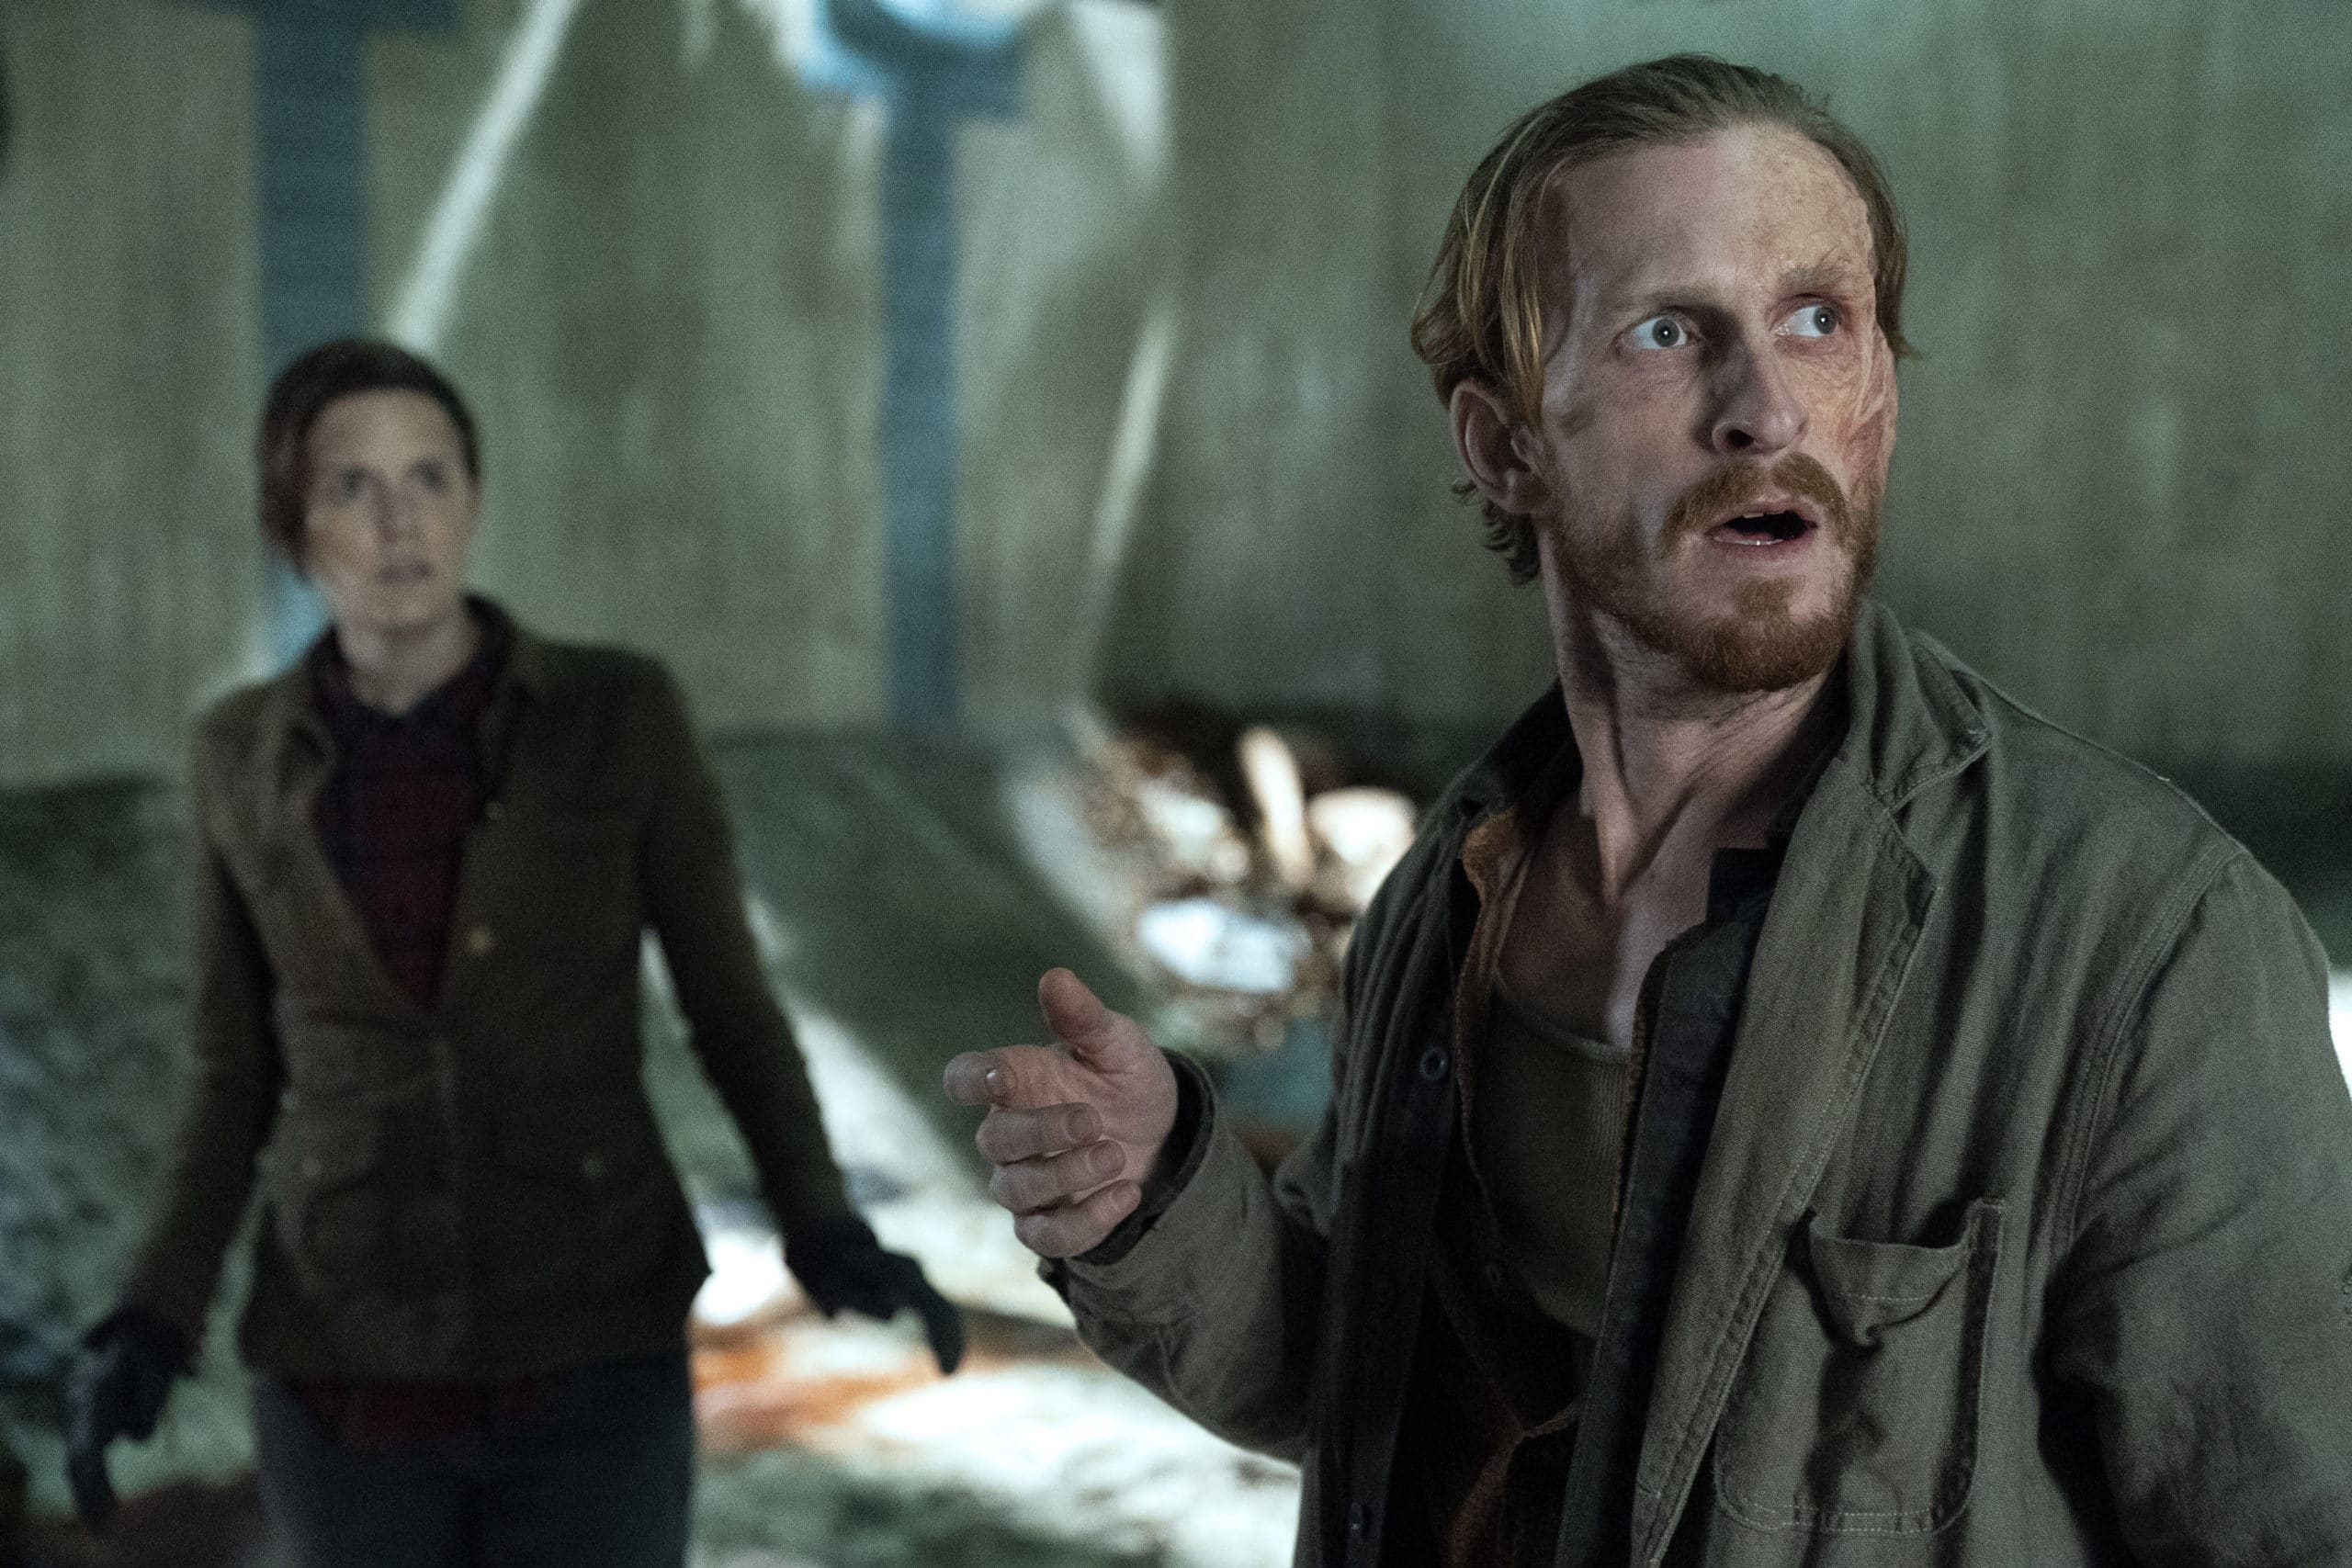 Maggie Grace as Althea and Austin Amelio as Dwight